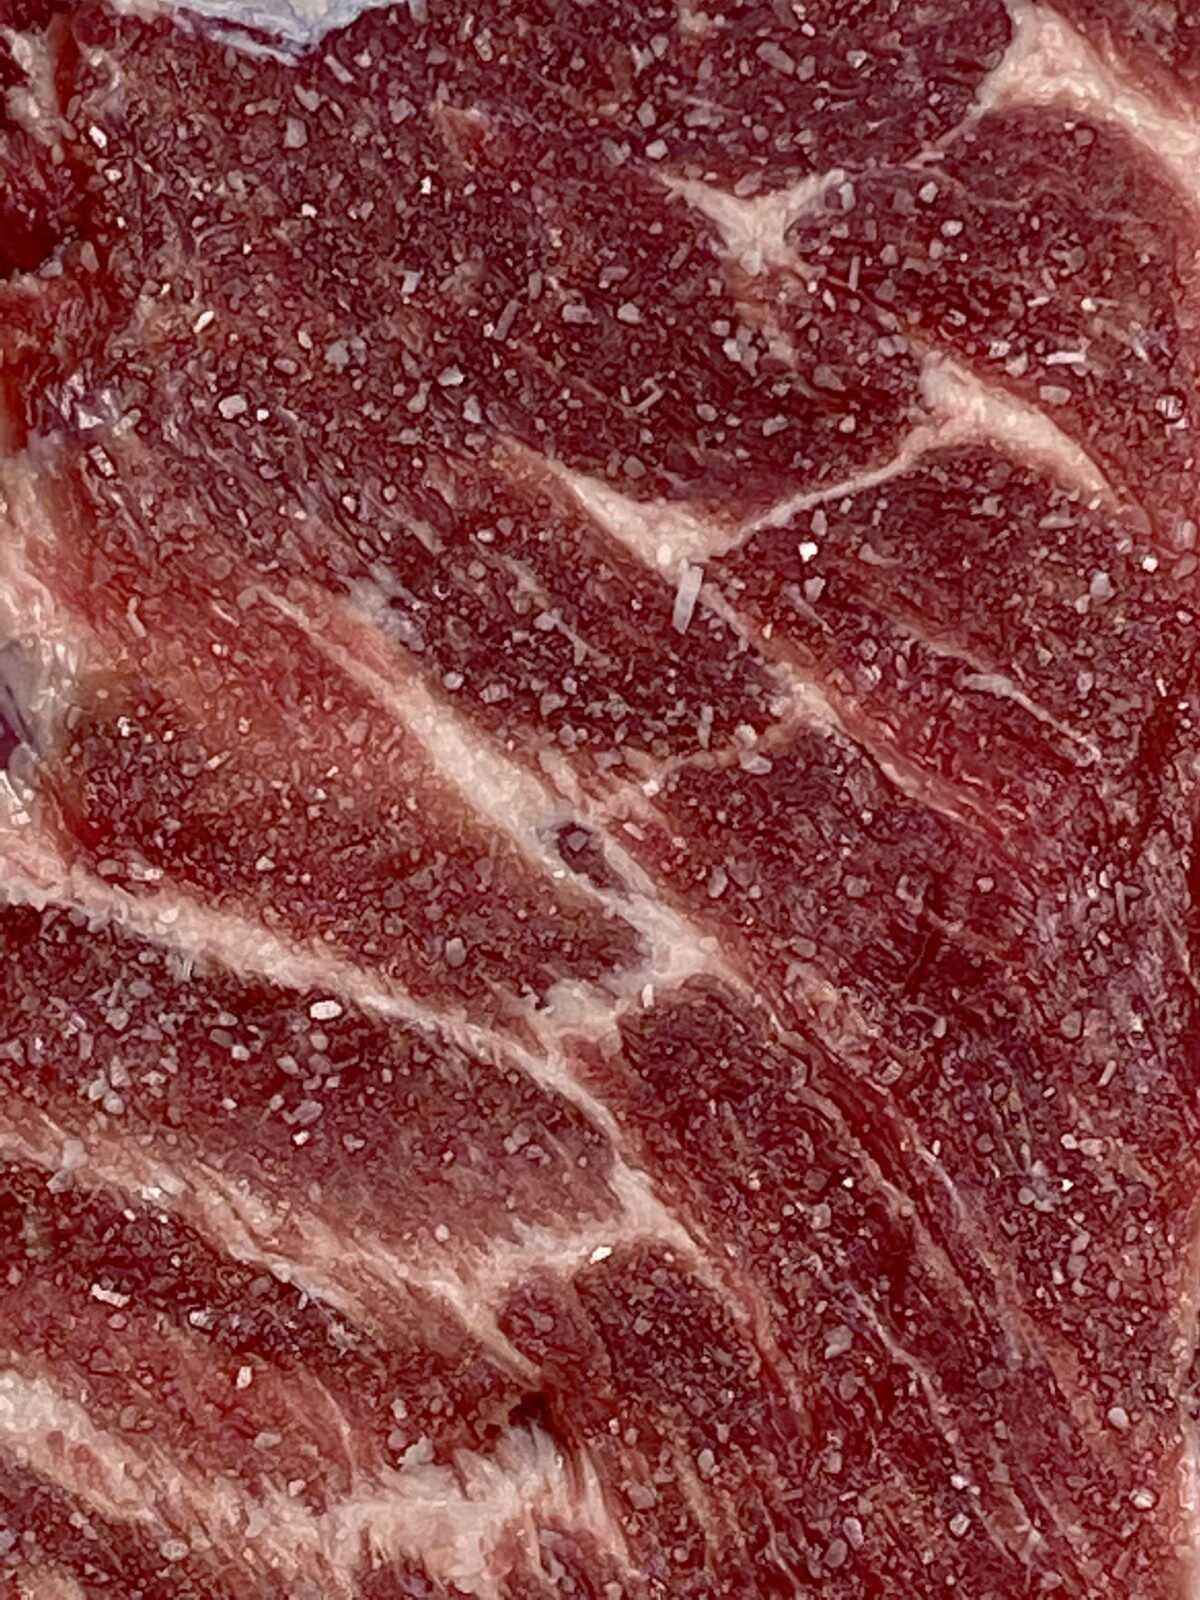 Close up image of salt coverage on the rack of ribs during the dry brine stage.